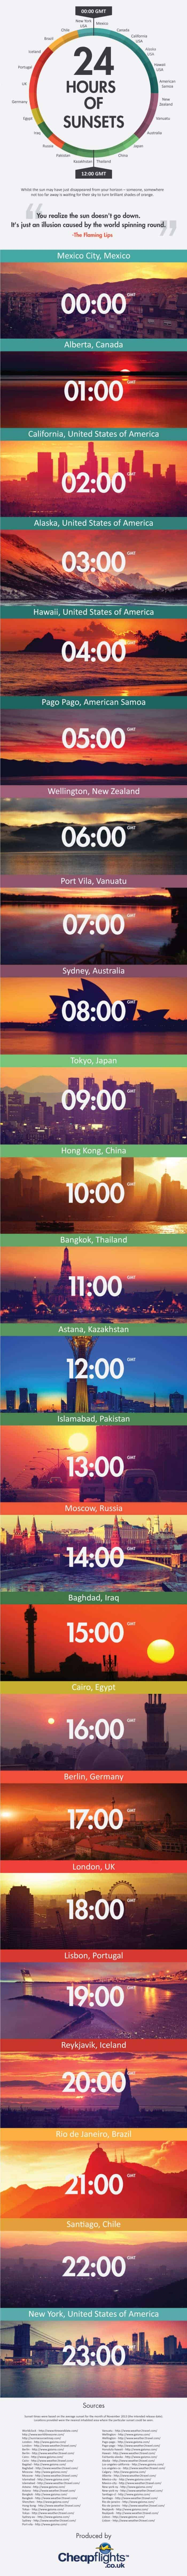 sunset-infographic